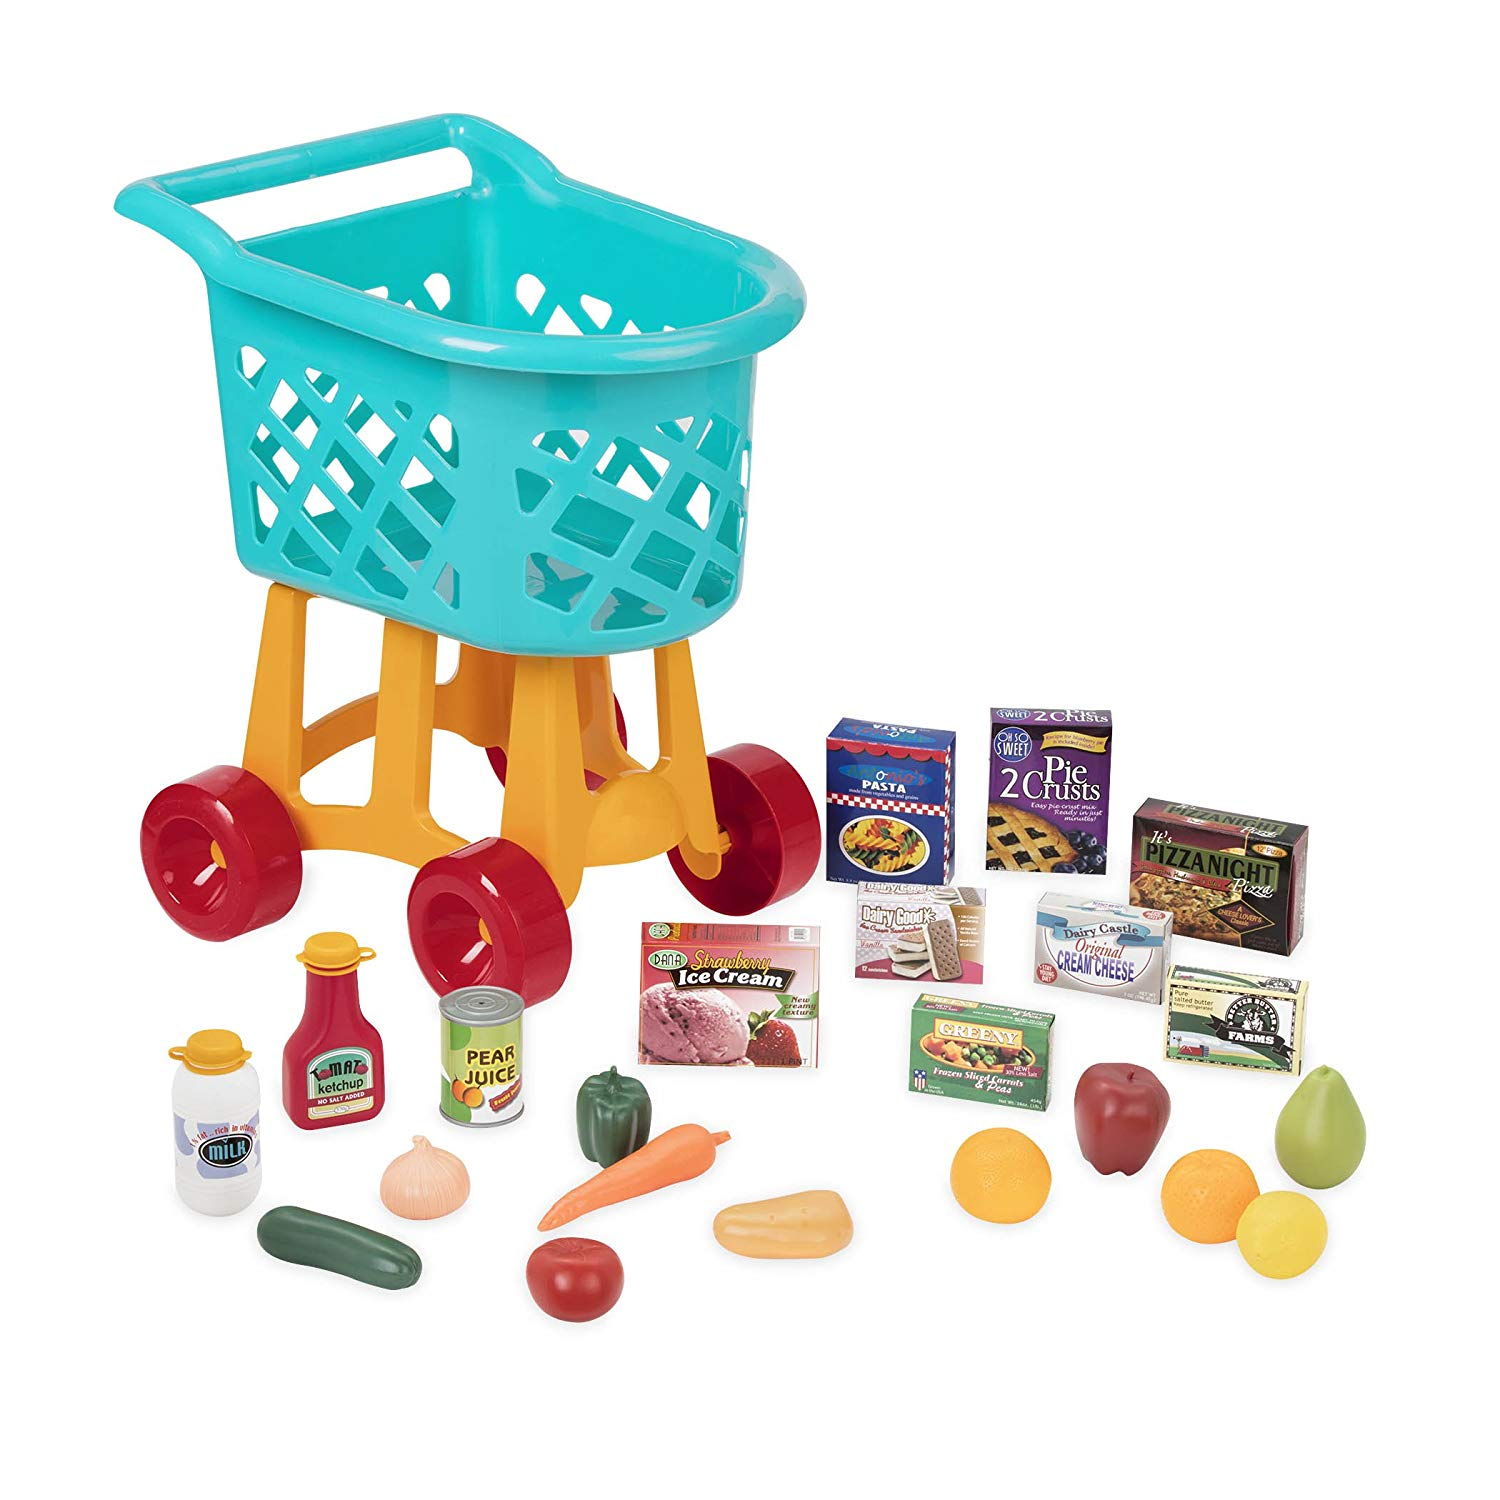 Save Up To 45% On Toys From Battat, Play Circle & Bristle